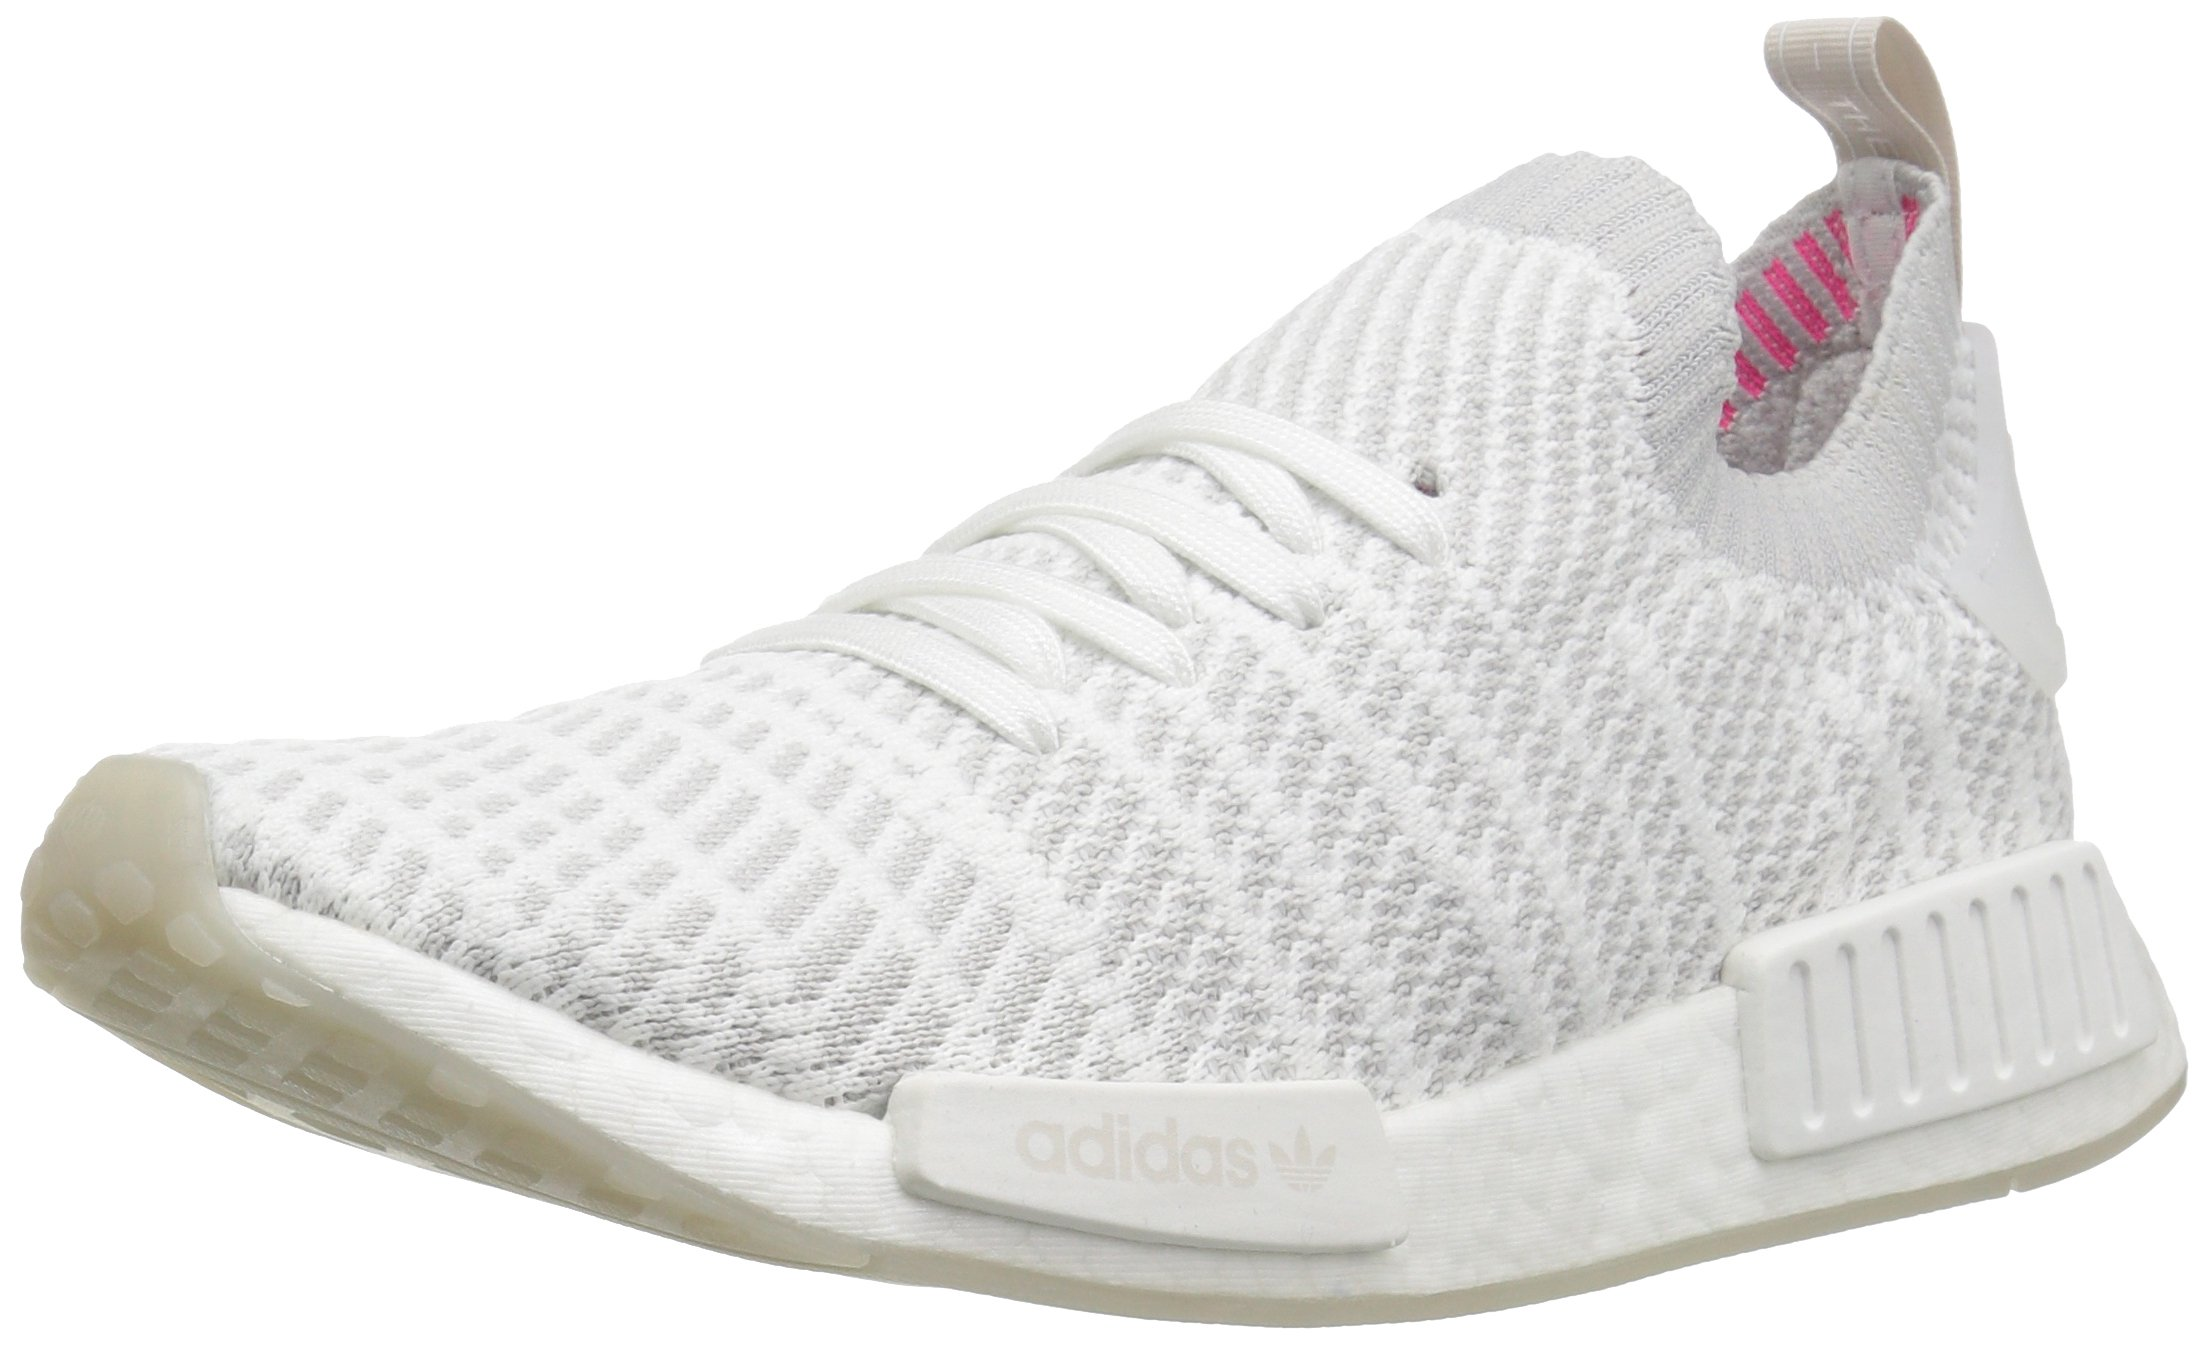 adidas Originals Men's NMD_R1 Stlt PK, White/Grey One/Soft Pink, 10.5 M US by adidas Originals